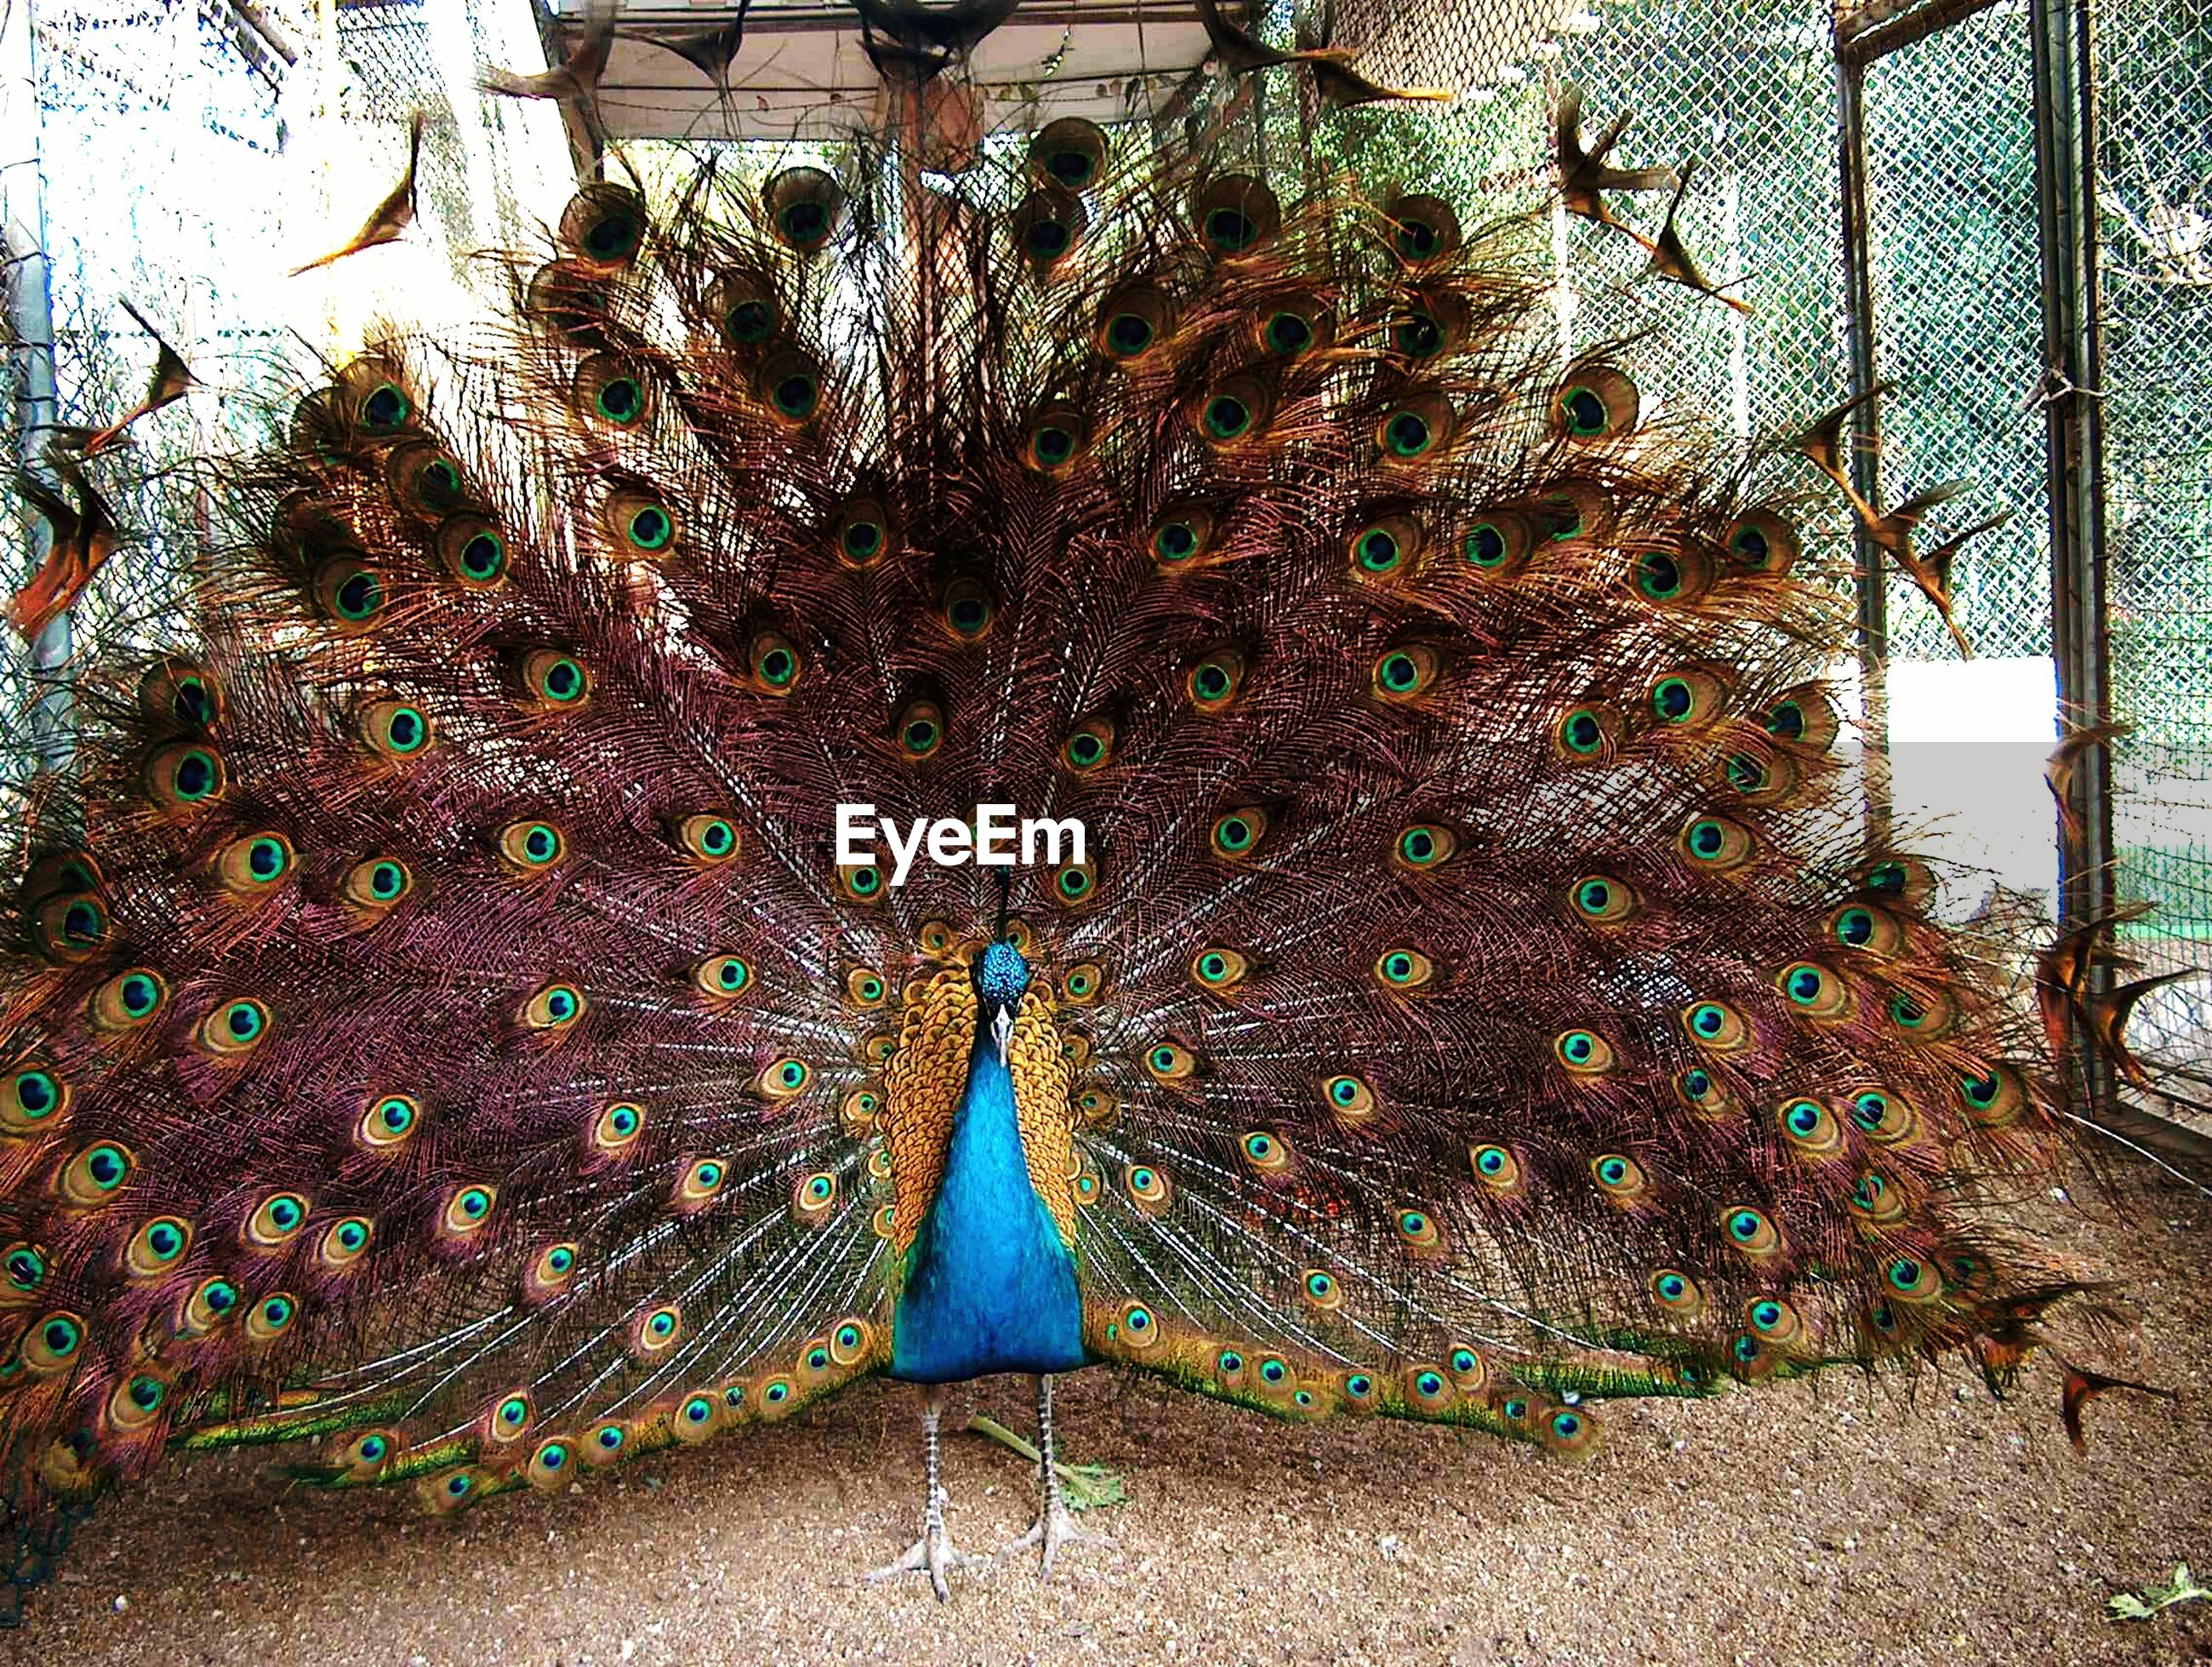 Peacock standing in cage